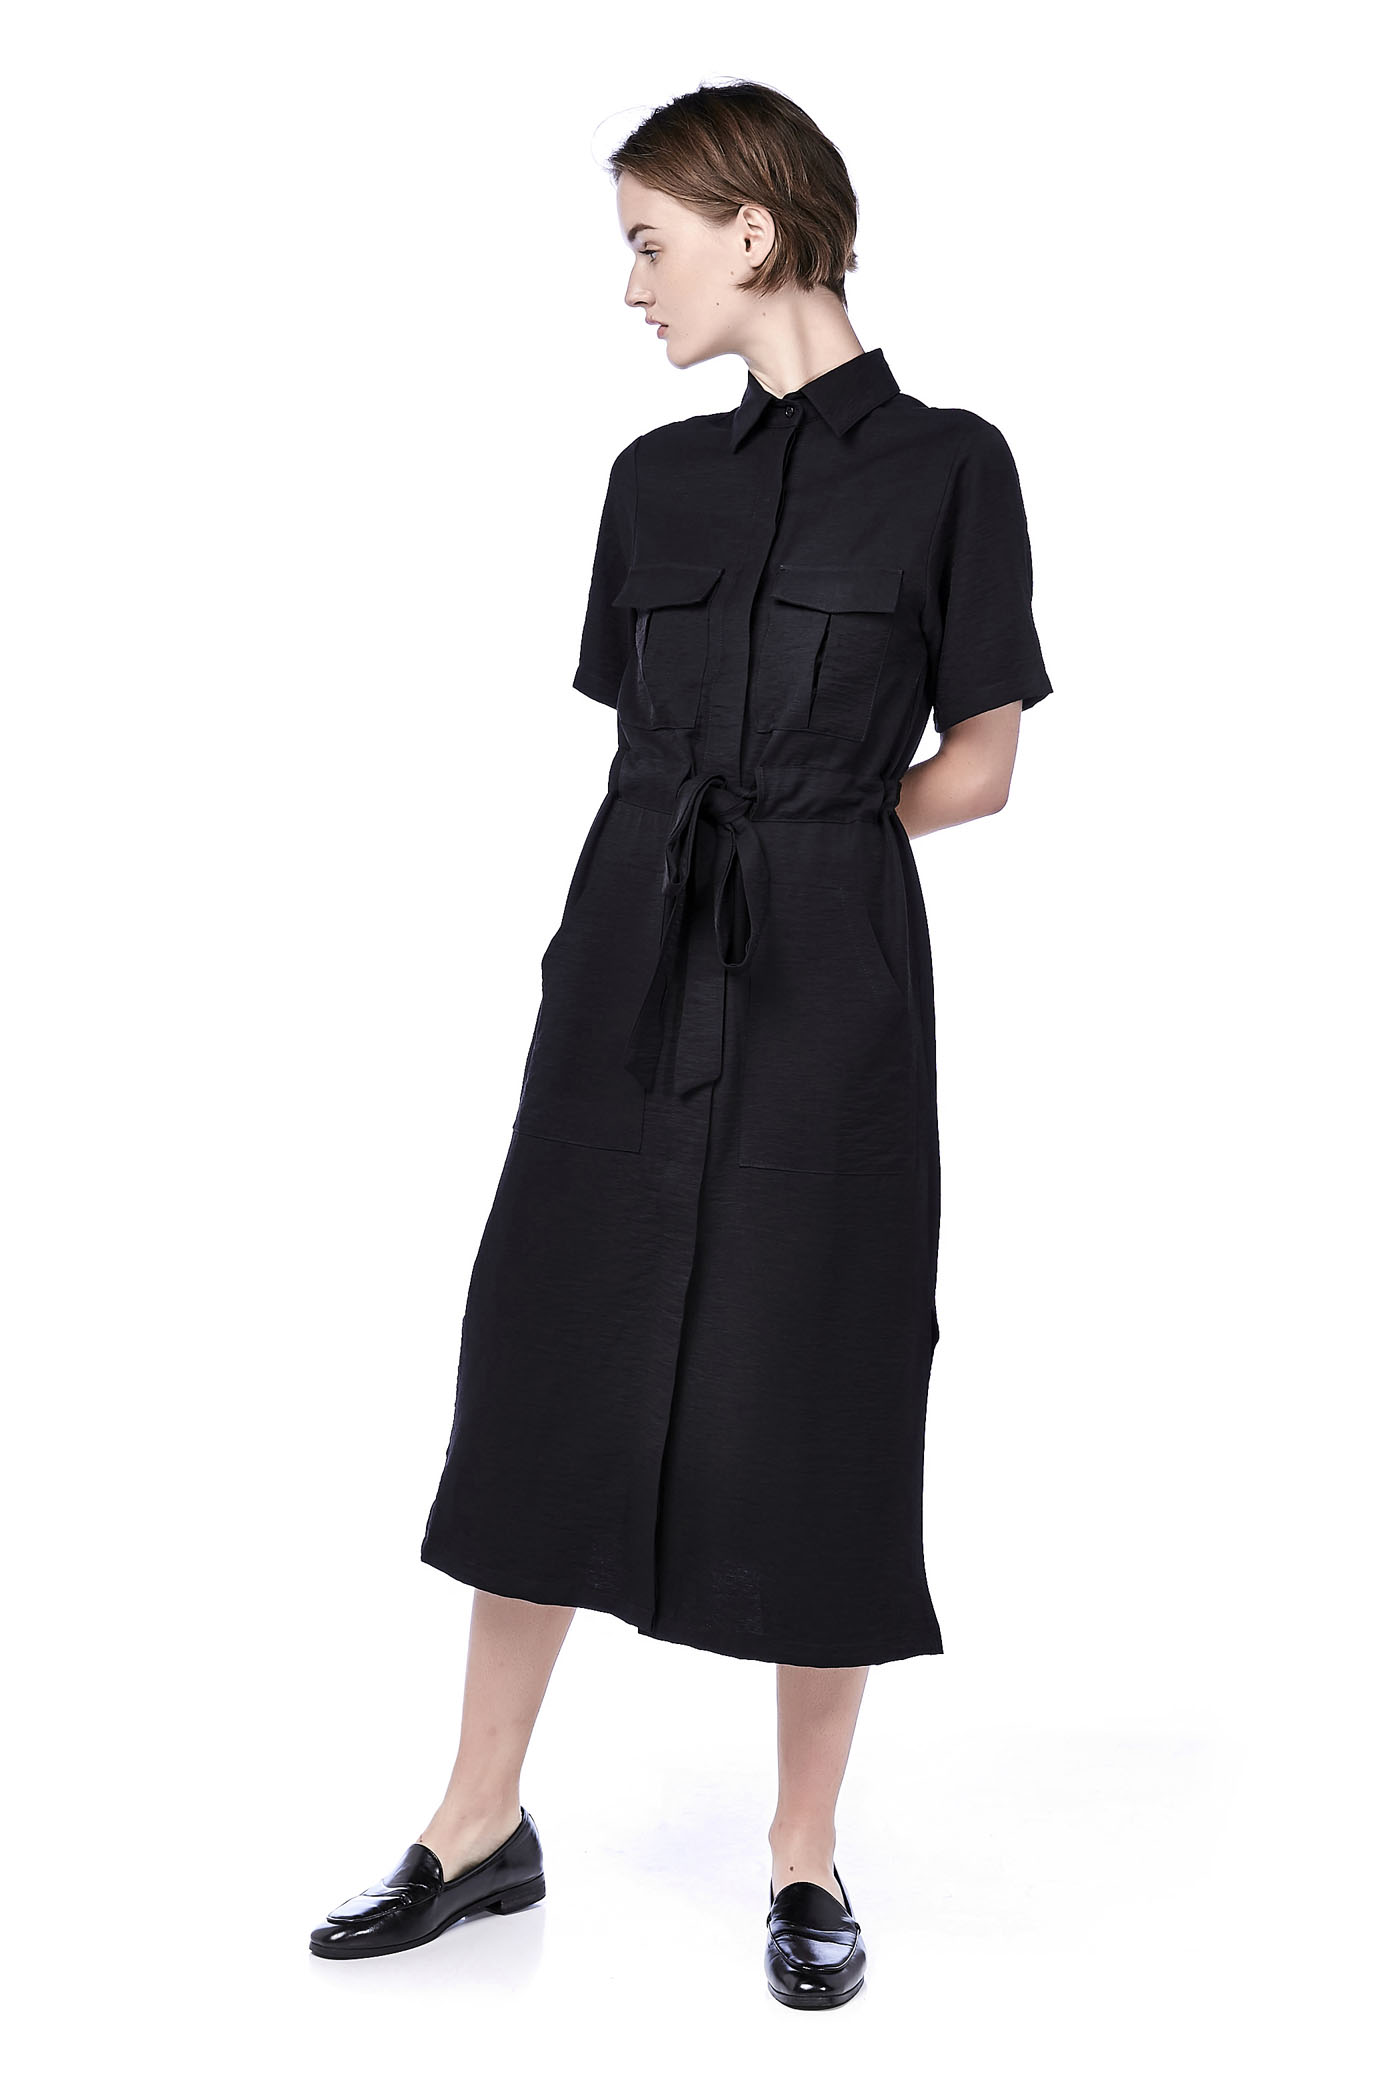 Dresses The Editors Market Kemeja Row Hitam Shop At Velvet Damian Drawstring Shirtdress